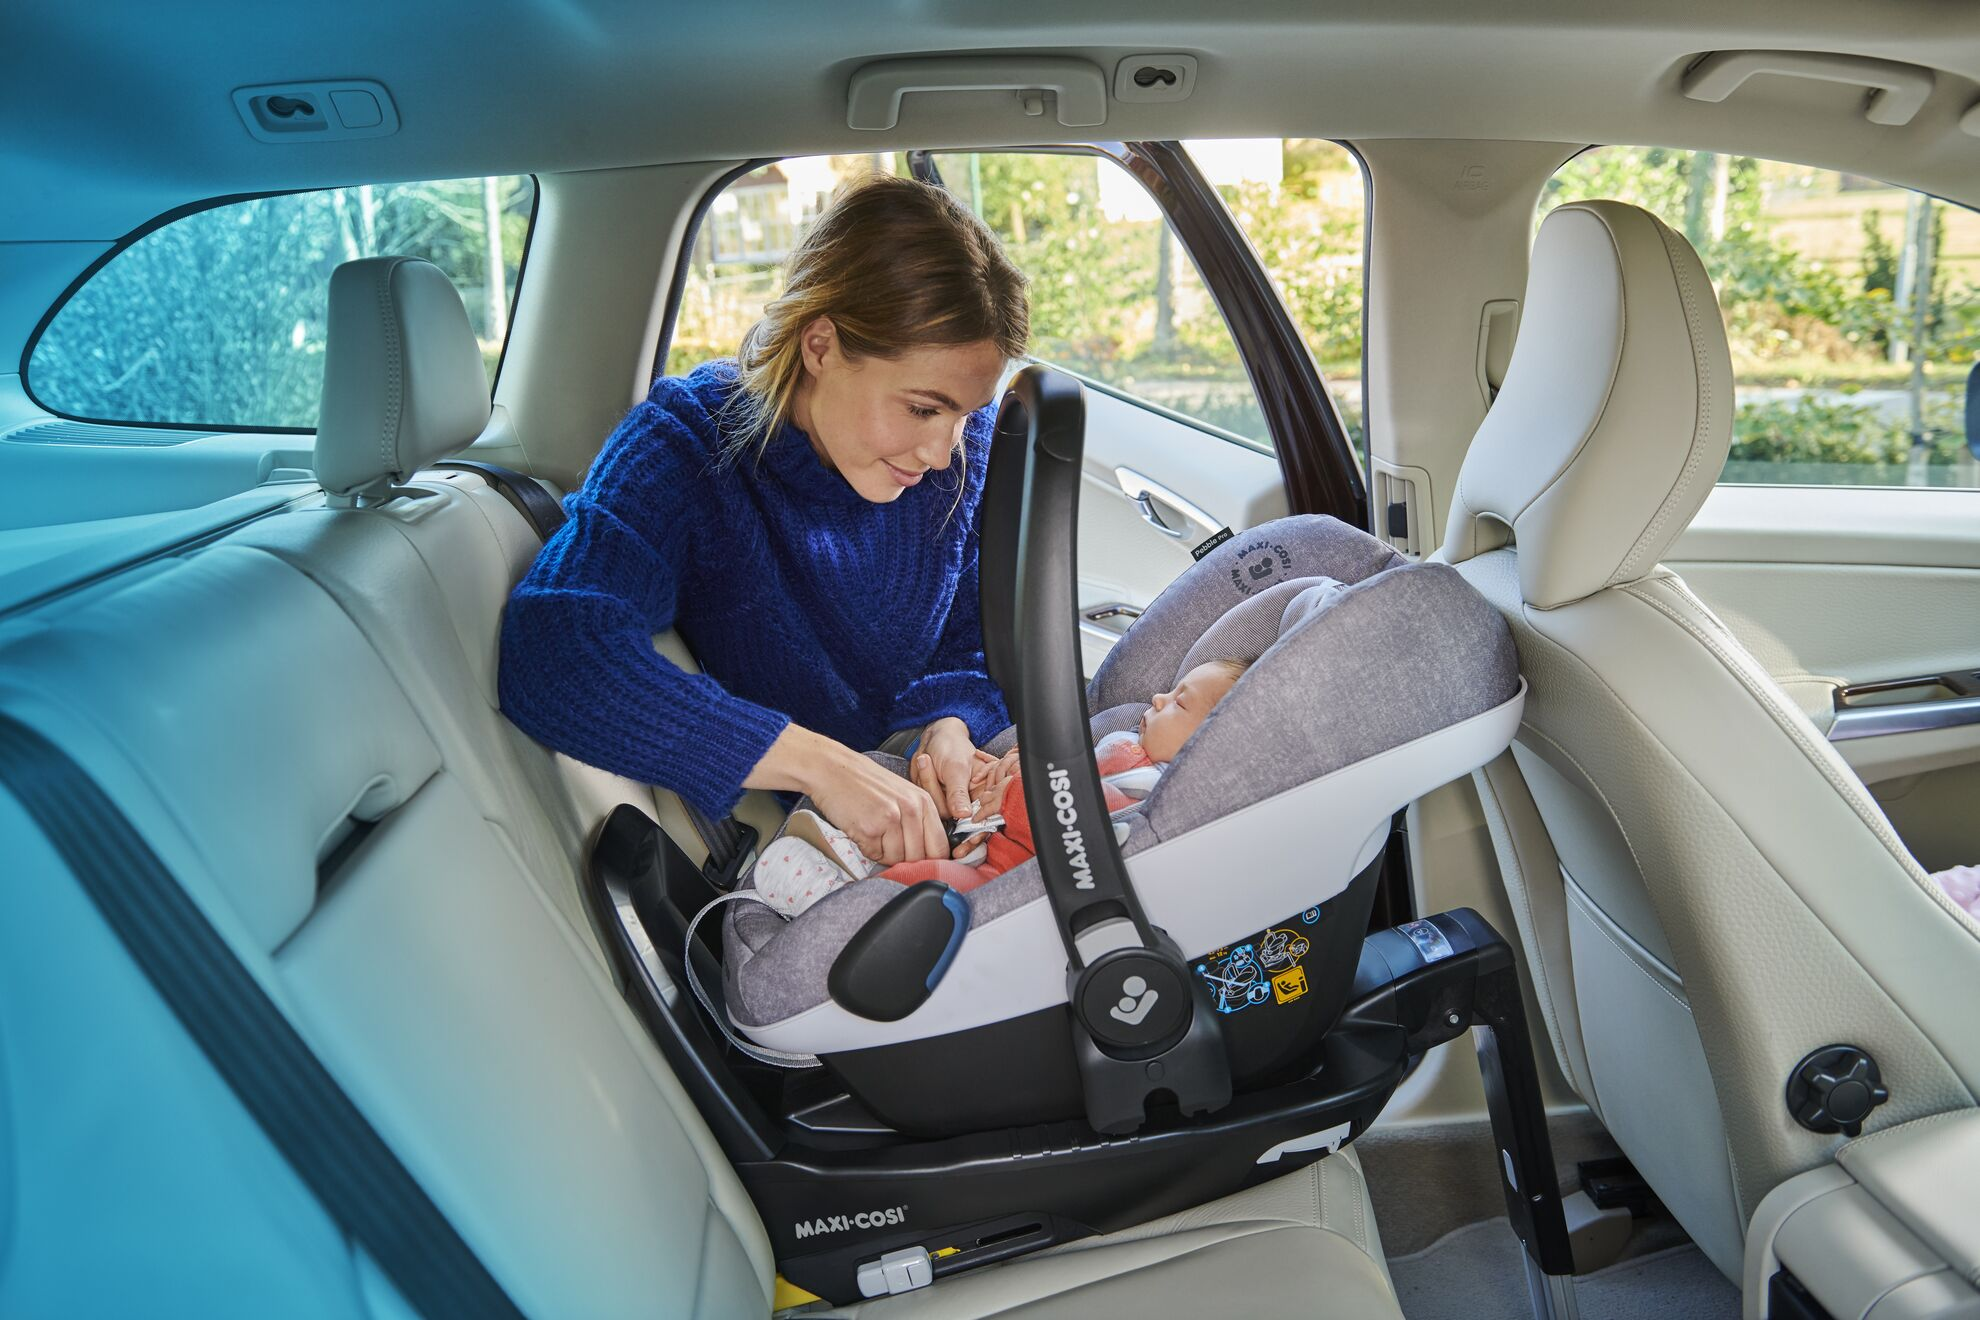 Travel safely with your newborn | Maxi-Cosi